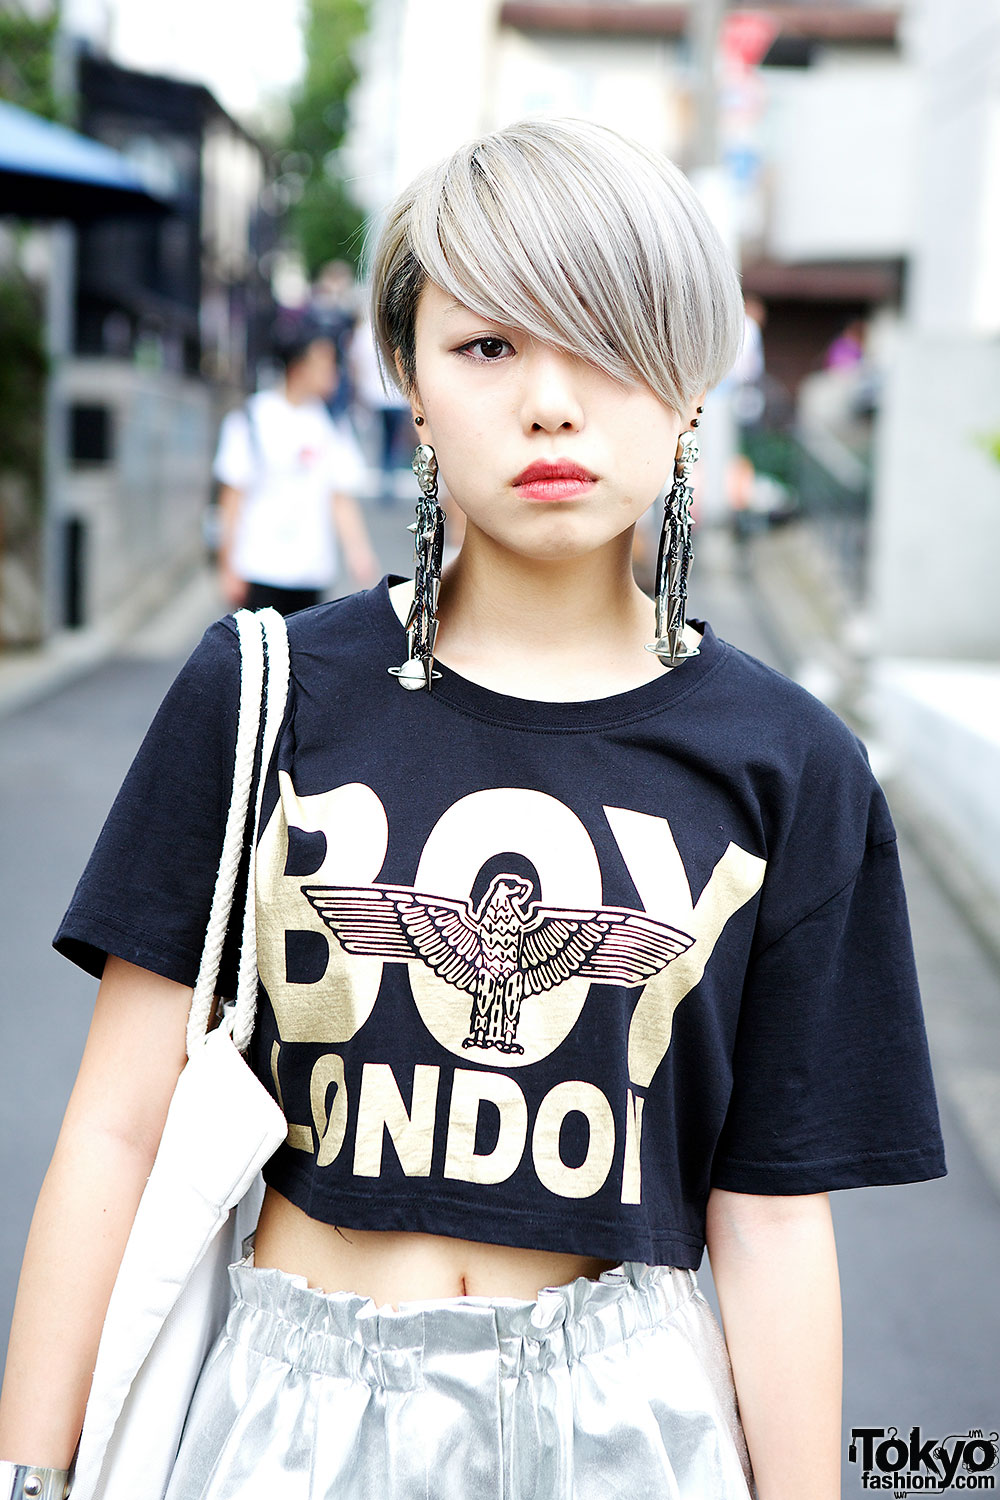 Boy London Crop Top Myob Earrings Choco Moo X Joyrich Tote Bag